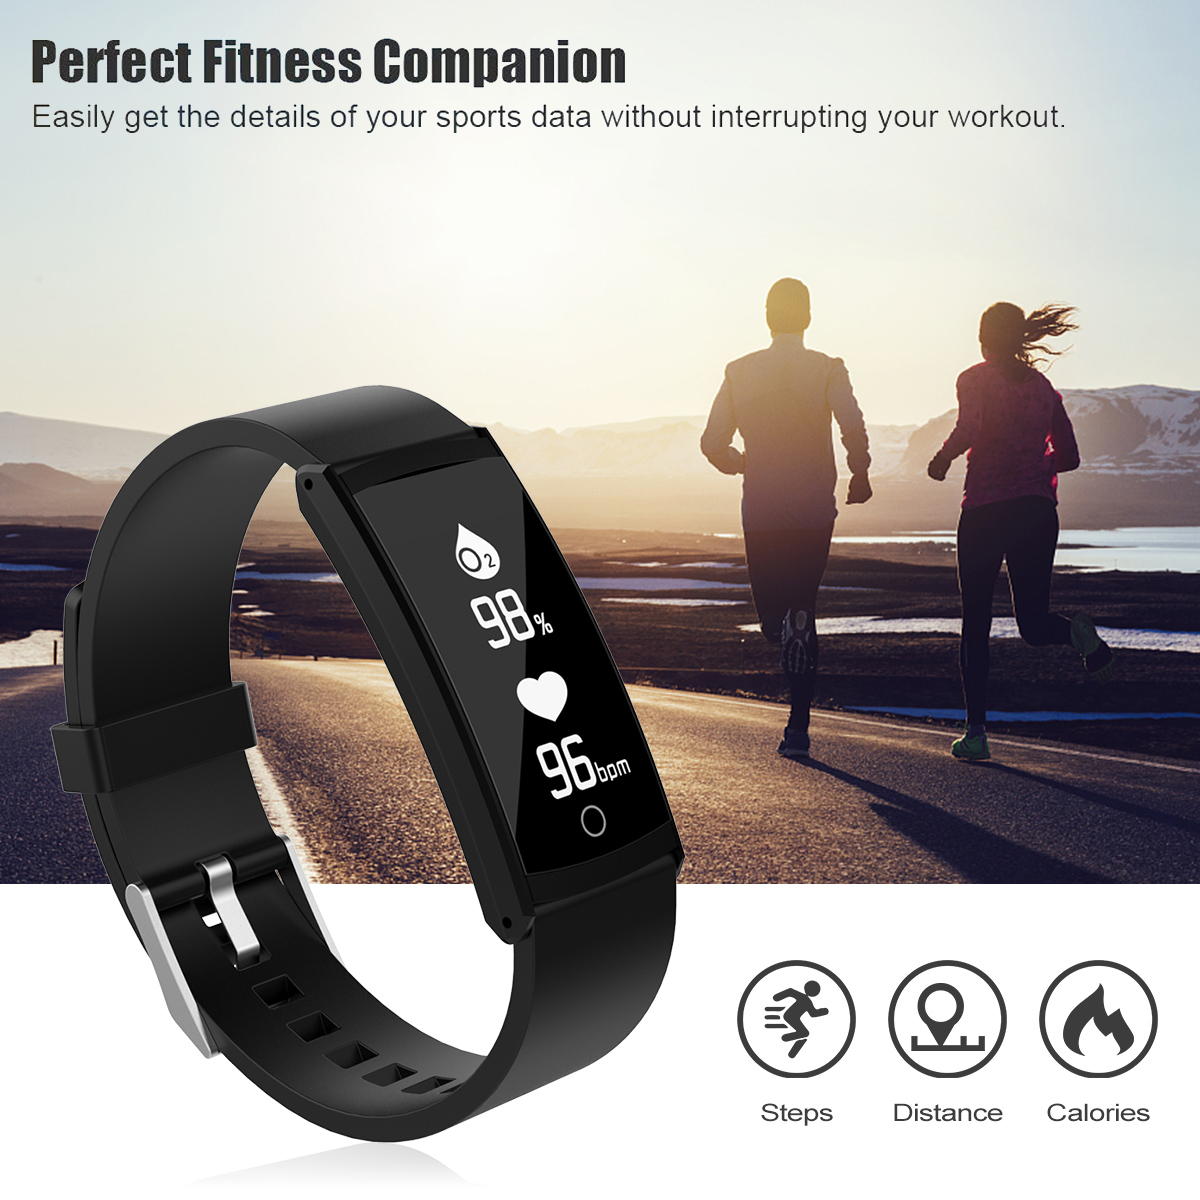 S6 Fitness Tracker Pedometer IP68 Waterproof Blood Oxygen Heart Rate Sleep Monitor Running Sport Step Tracker Counter Watch